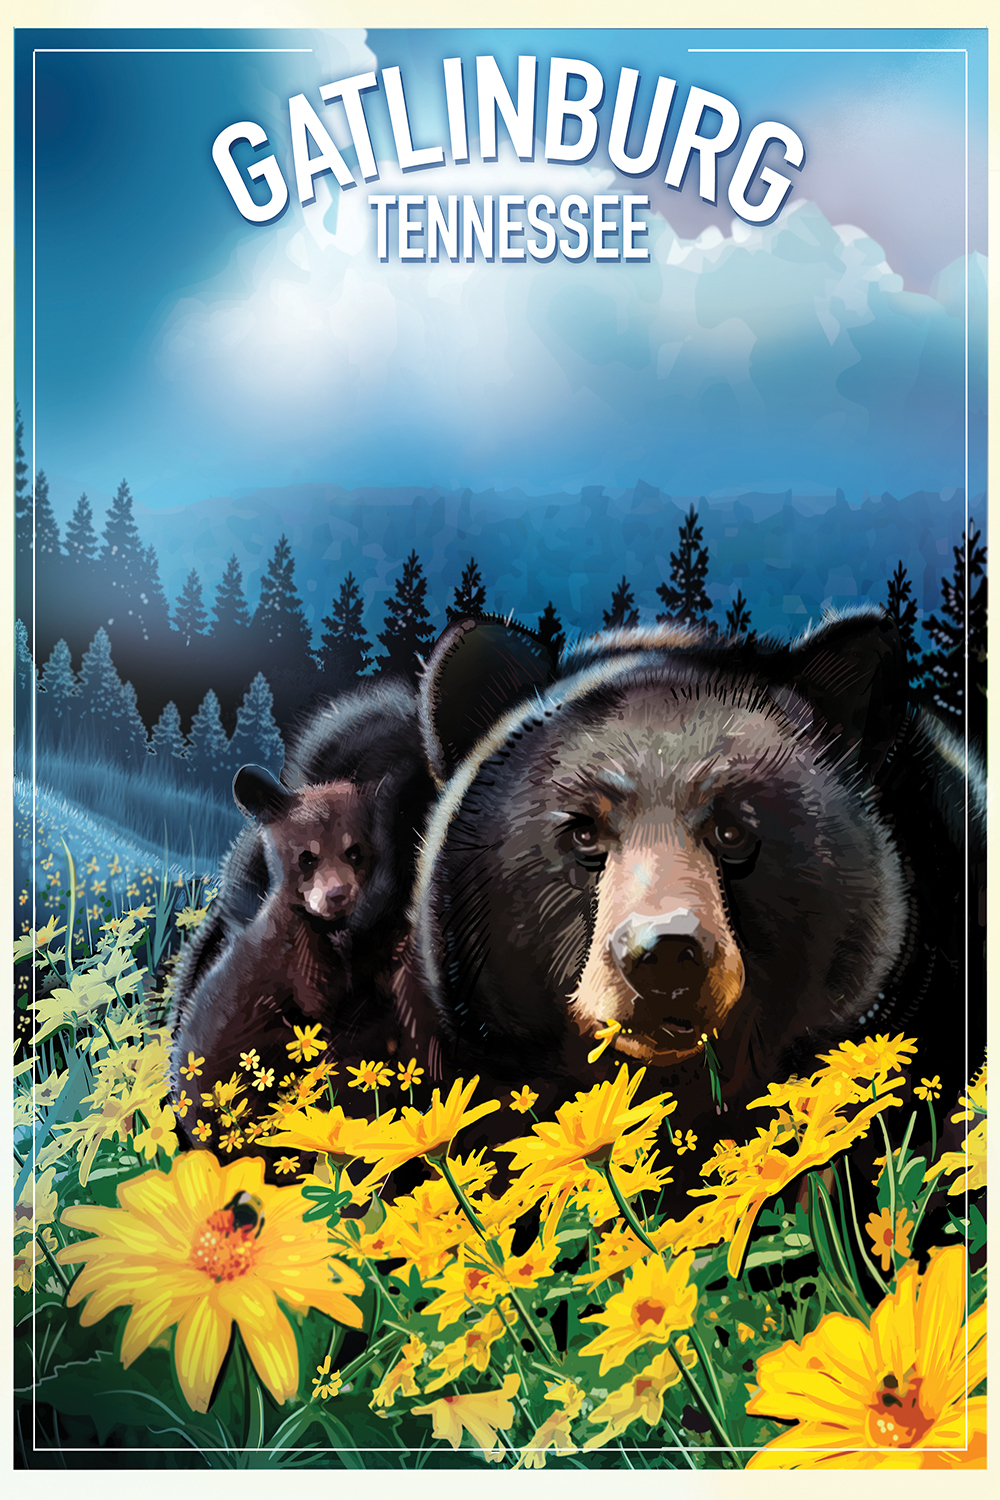 Graphic of adult and baby black bears in a field of yellow flowers with forest in the background and text that says Gatlinburg Tennessee